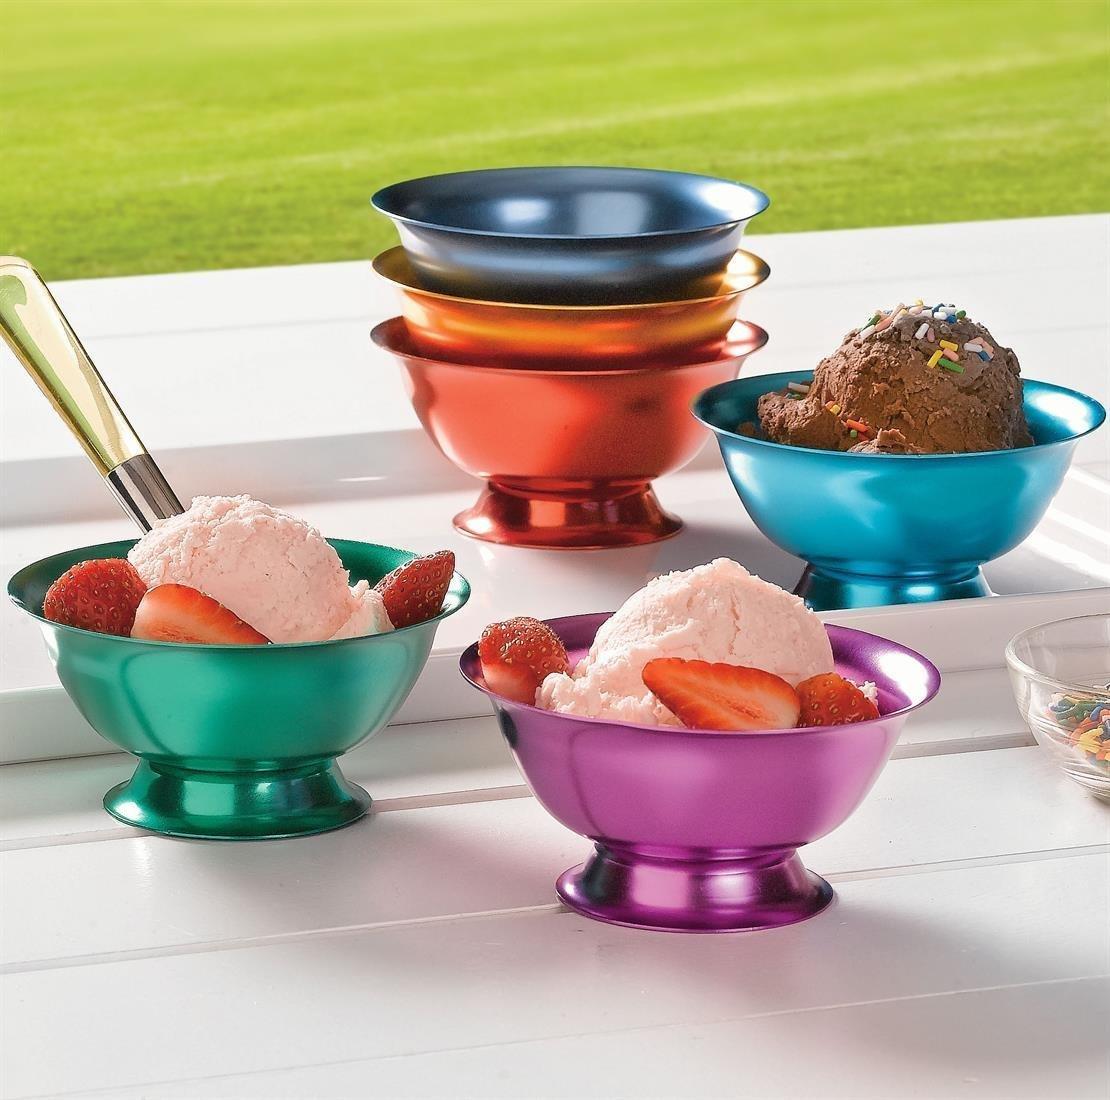 Set of 6 Anodized Aluminum Bowls